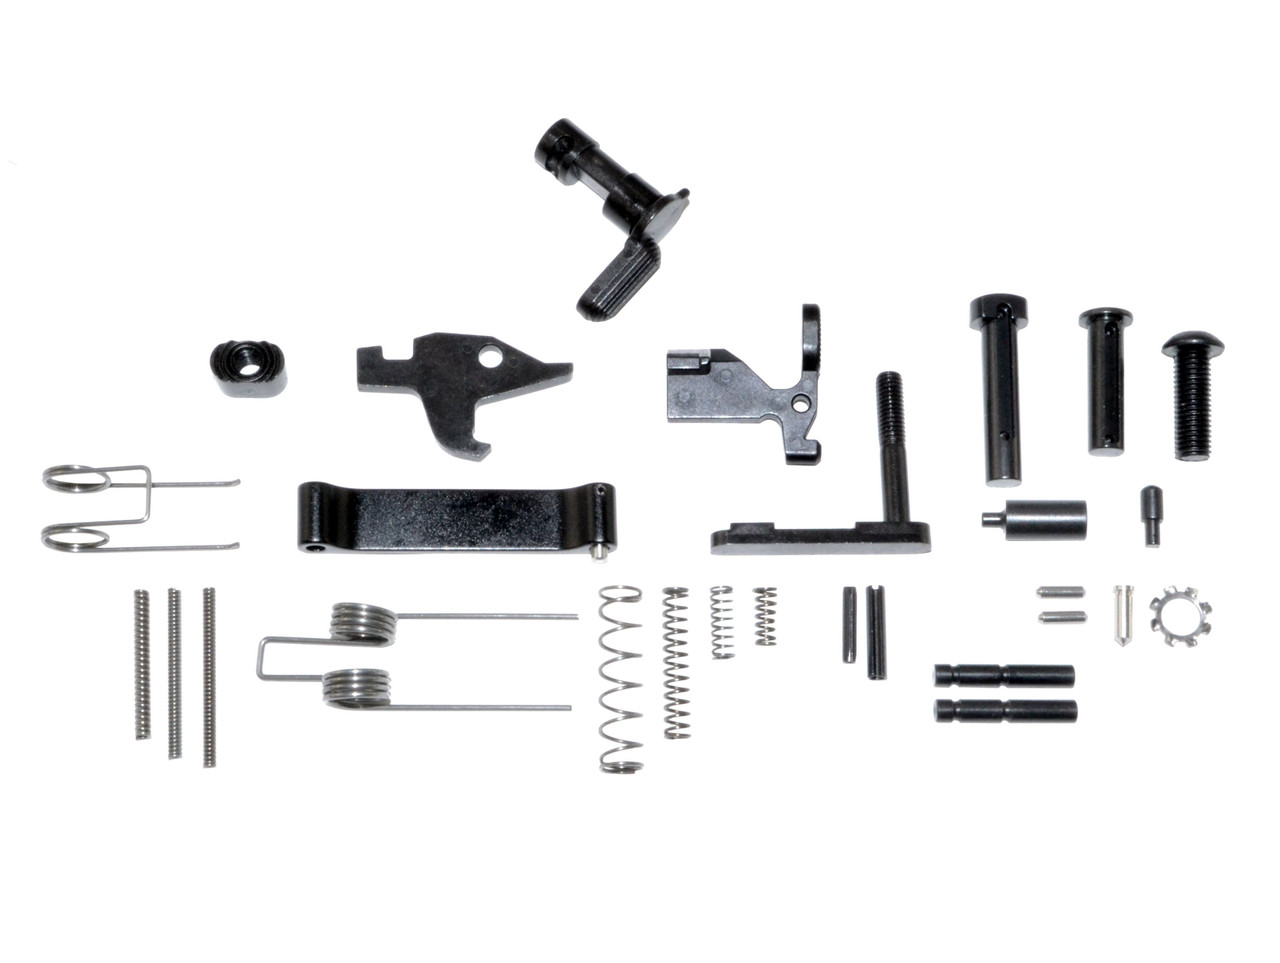 Standard AR-15 Lower Parts Kit  Without Fire Control Group